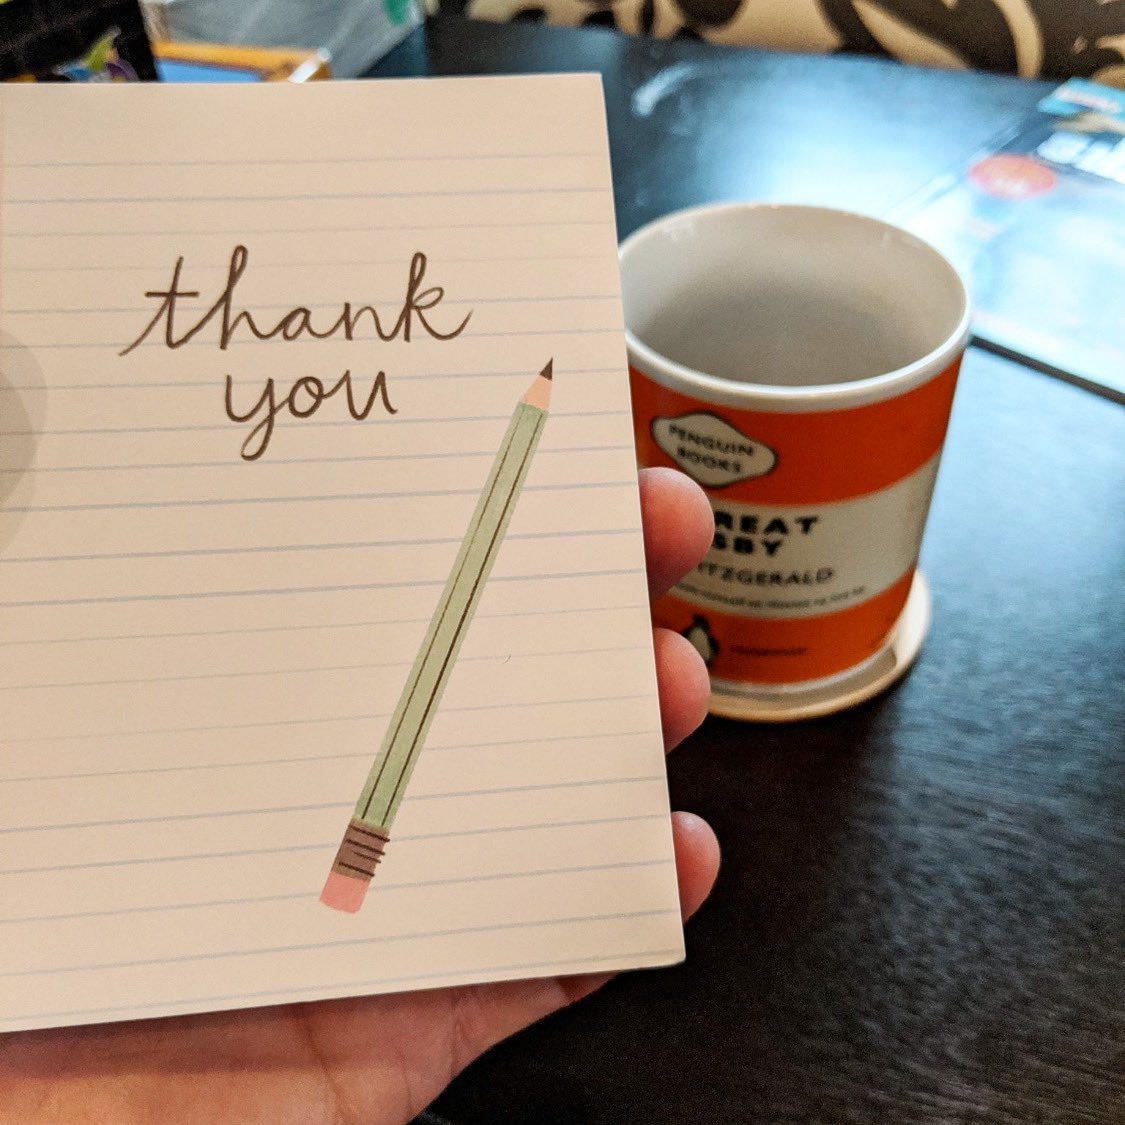 We wanted to say Thank You!   It's been a fun 1st year of Biz. We appreciate all who have supported and enjoyed our ☕️   This is a picture a customer sent of the cards we sent him. We try to send a note to everyone who buys ✊ https://t.co/VhH5dDcCHN